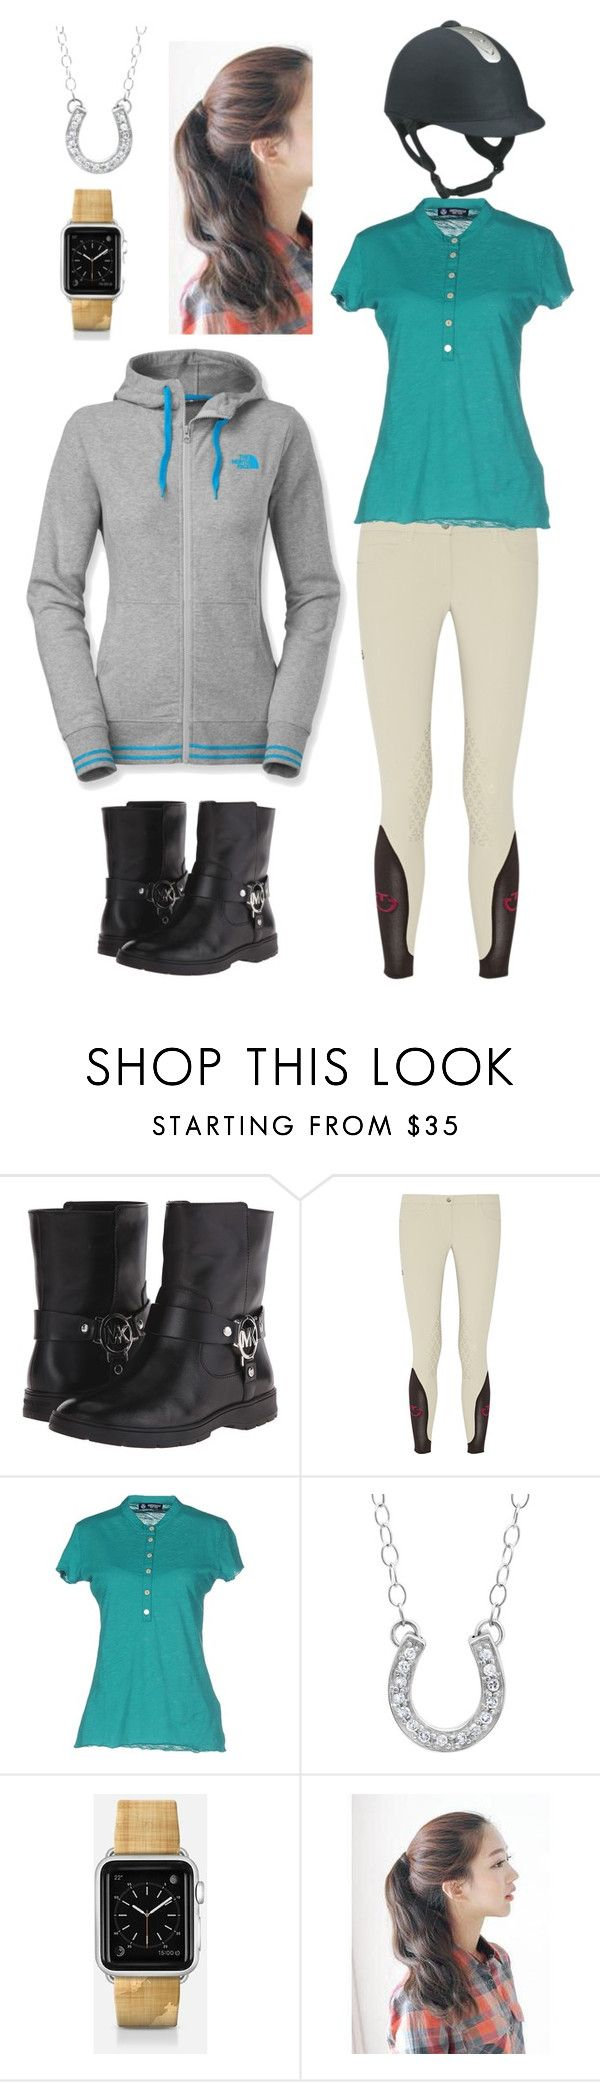 """""""Horse Riding"""" by gracenickel on Polyvore featuring MICHAEL Michael Kors, Cavalleria Toscana, NORTH SAILS, Kevin Jewelers, Casetify, pinkage and The North Face"""